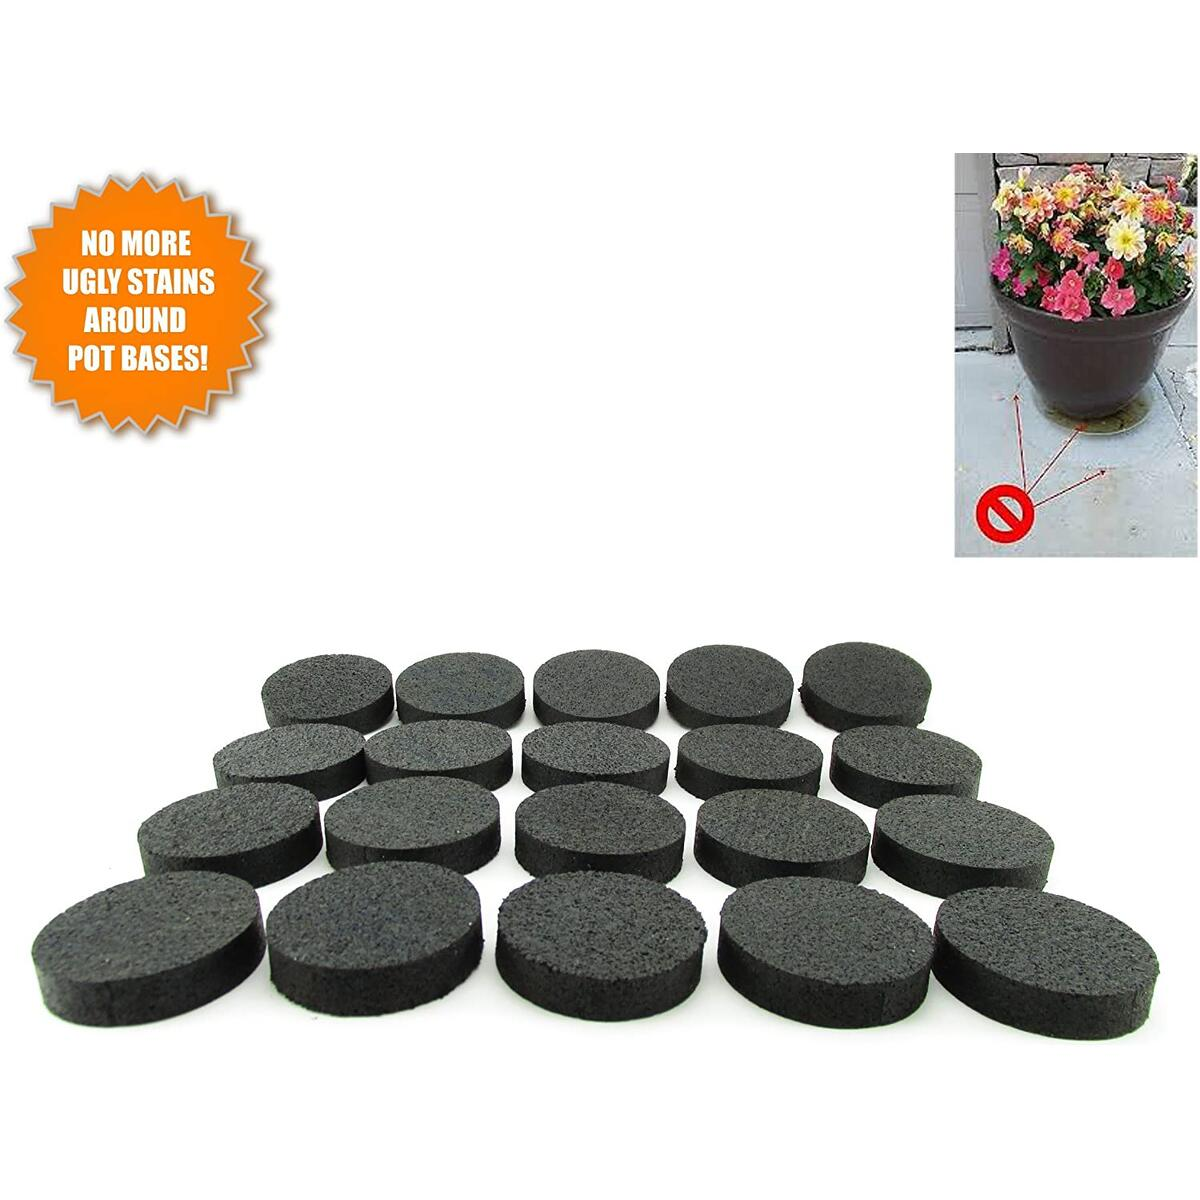 Flower Pot Feet, Invisible Flower Pot Risers, Rubber Risers for Plant Pots - 20 or 8 Pc (20)